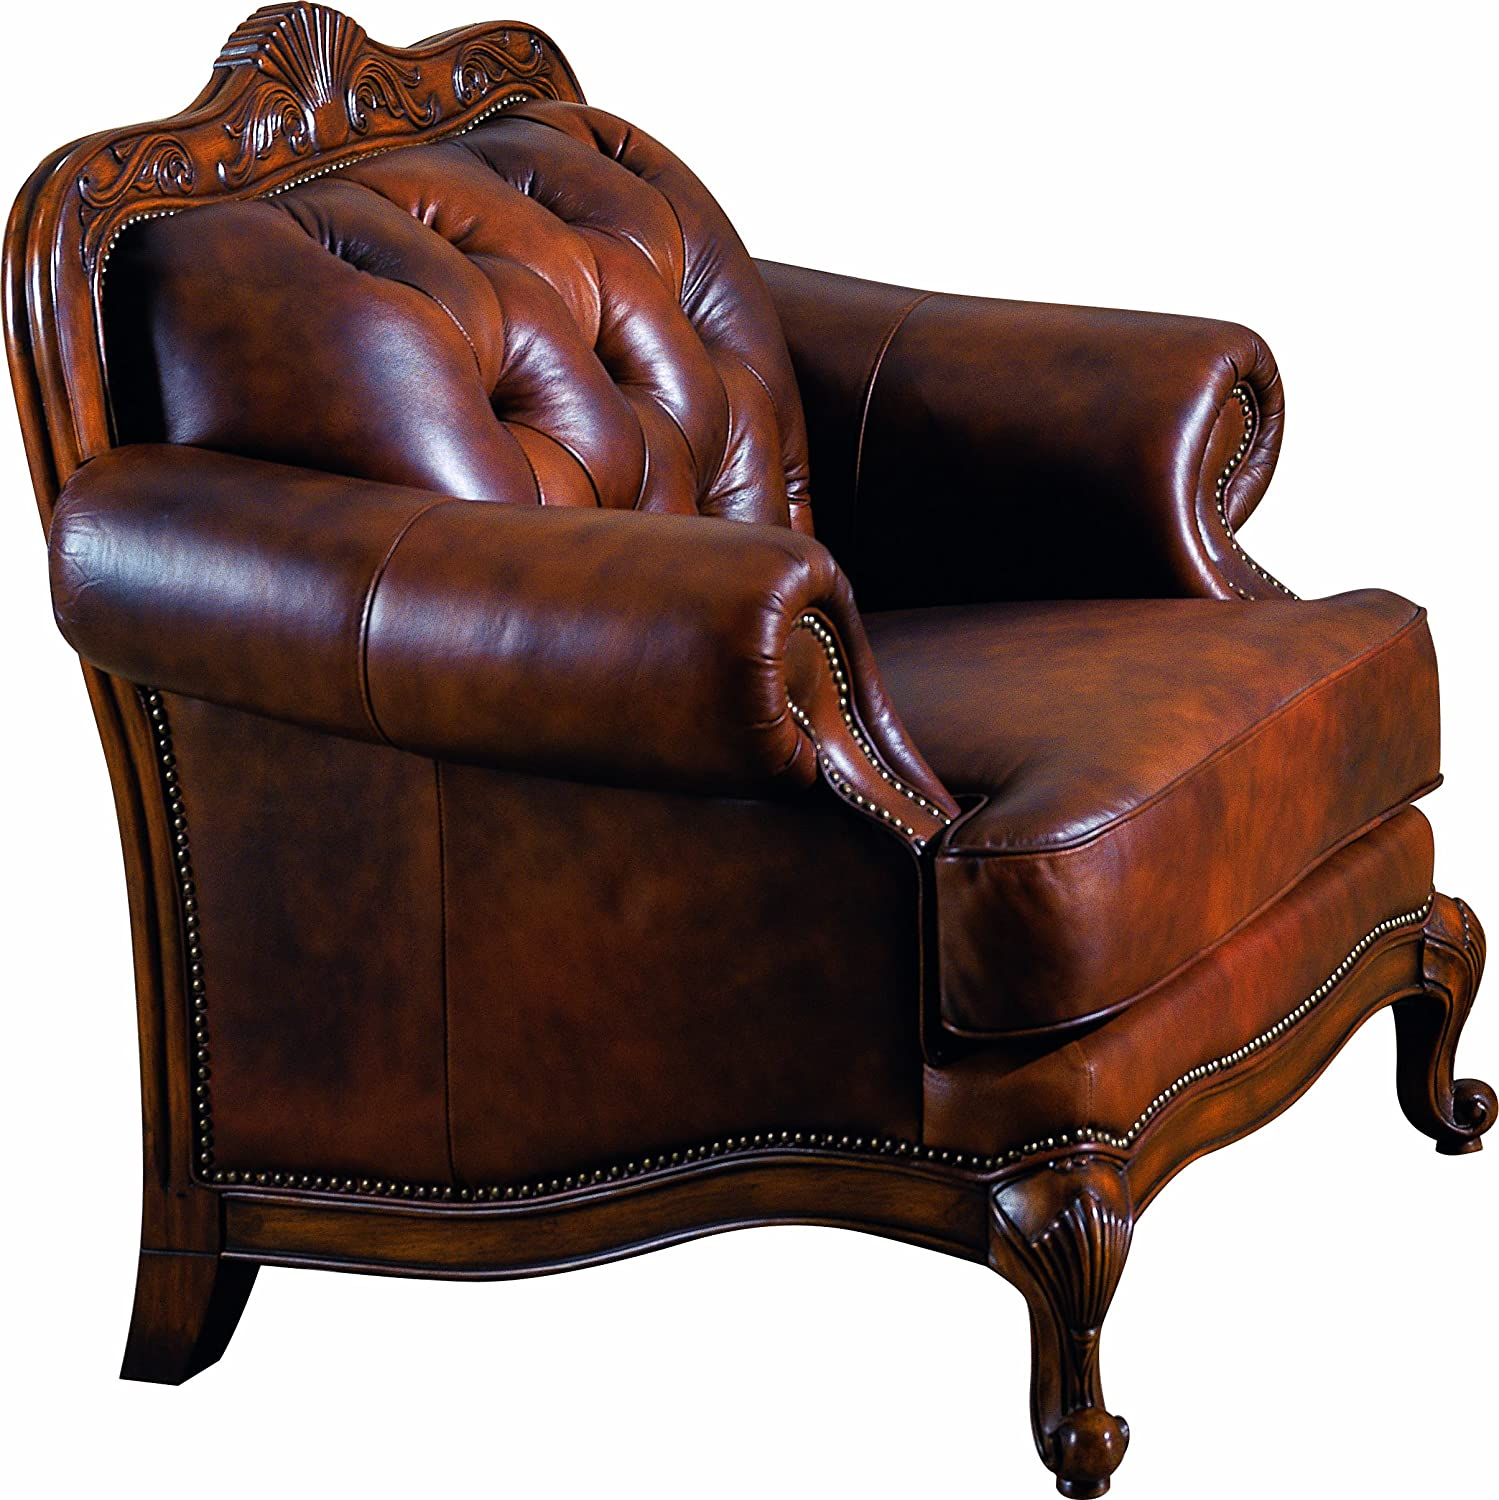 Leather Club Chair Detailed Buyer Guide on Which one to BUY